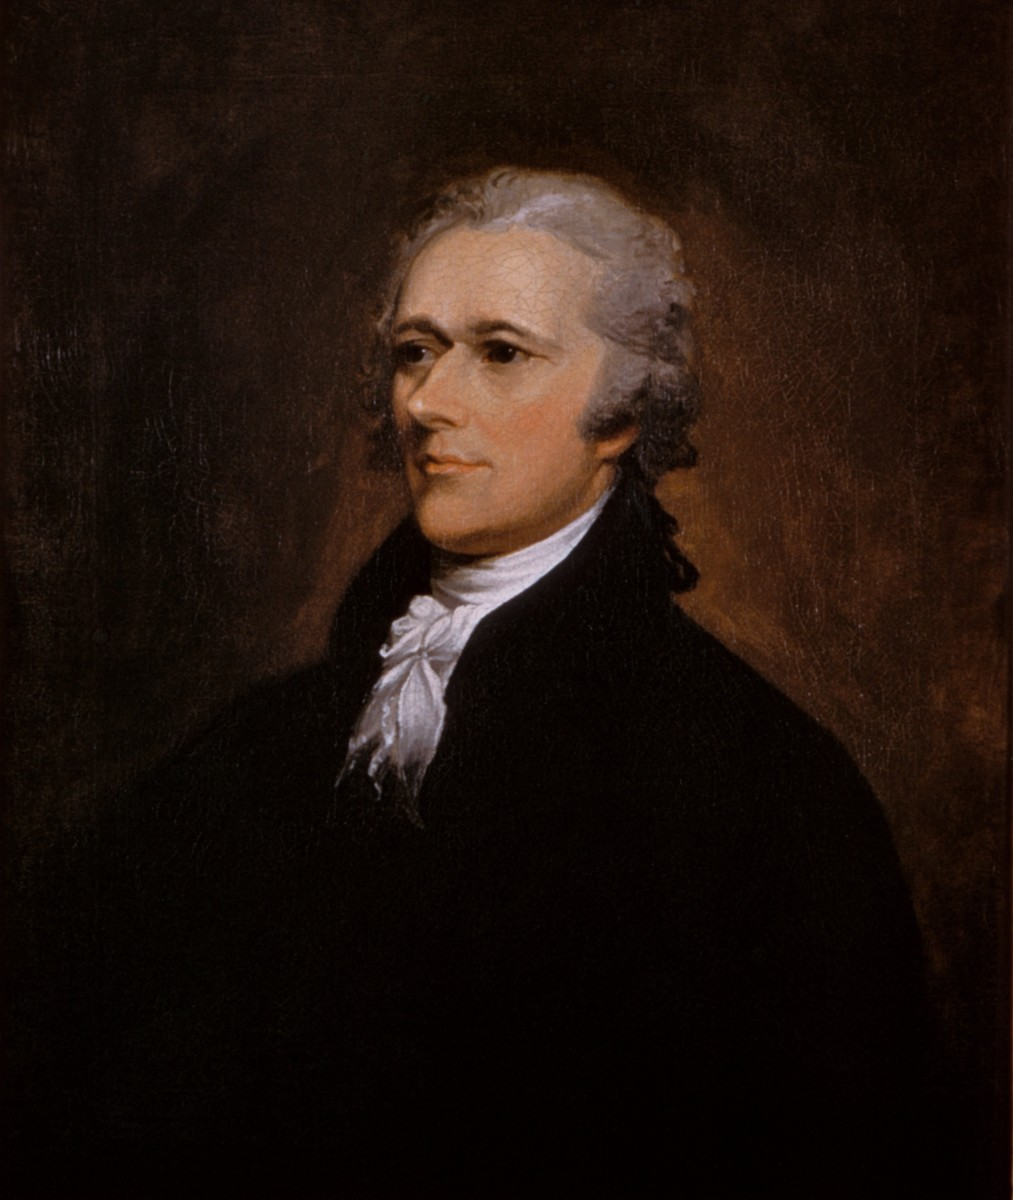 """""""Alexander Hamilton recruited John Jay and James Madison to write a series of essays defending the proposed Constitution, now known as The Federalist Papers..."""" (Chernow, pp. 247–48)"""